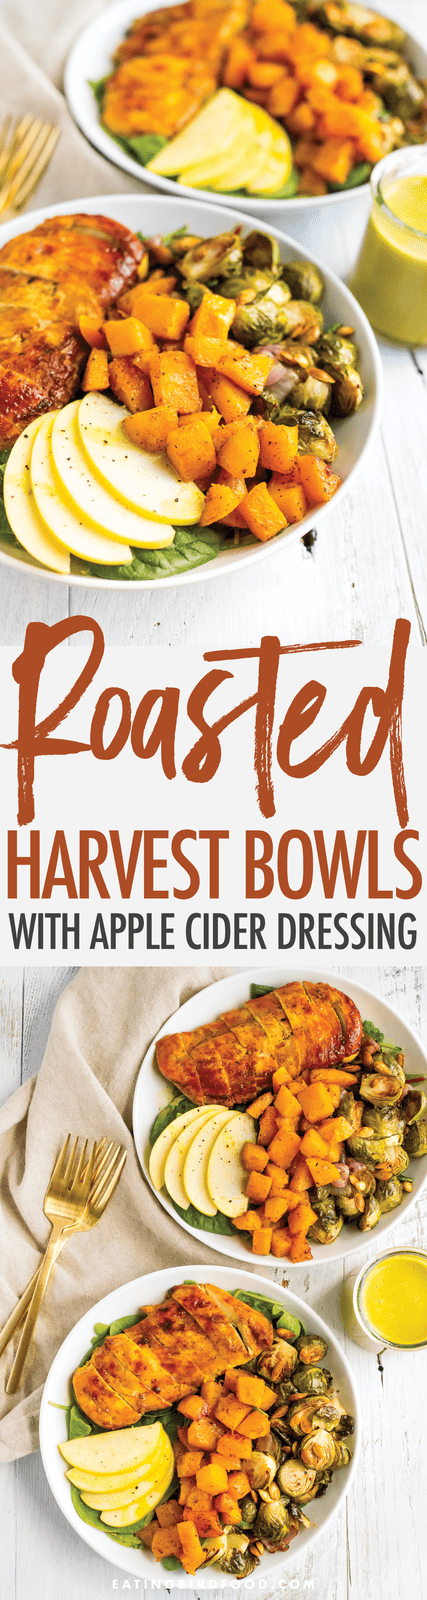 Roasted harvest bowls piled with veggies, apples, maple turmeric chicken, and an apple cider dressing.